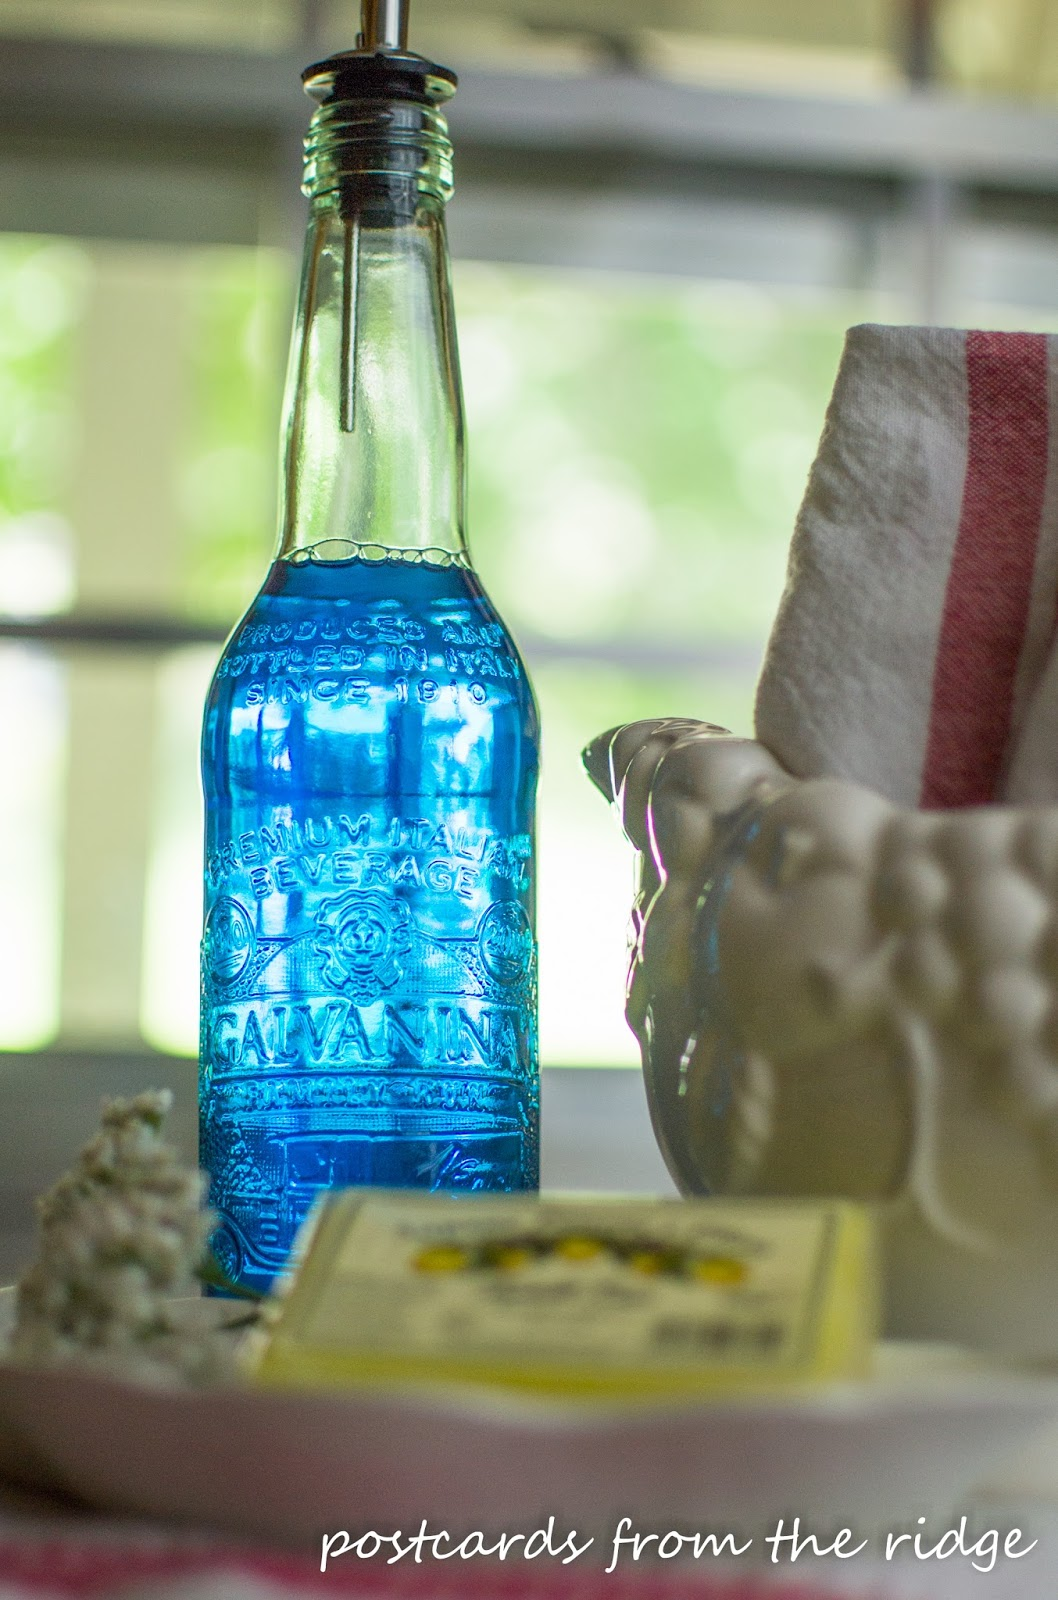 Designer Diy Kitchen Soap Dispenser Bottle Postcards From The Ridge I Decided To Make A Pretty Dish Soap Dispenser It Can Be Used As A Dispenser For Olive Dish Hand Or Even